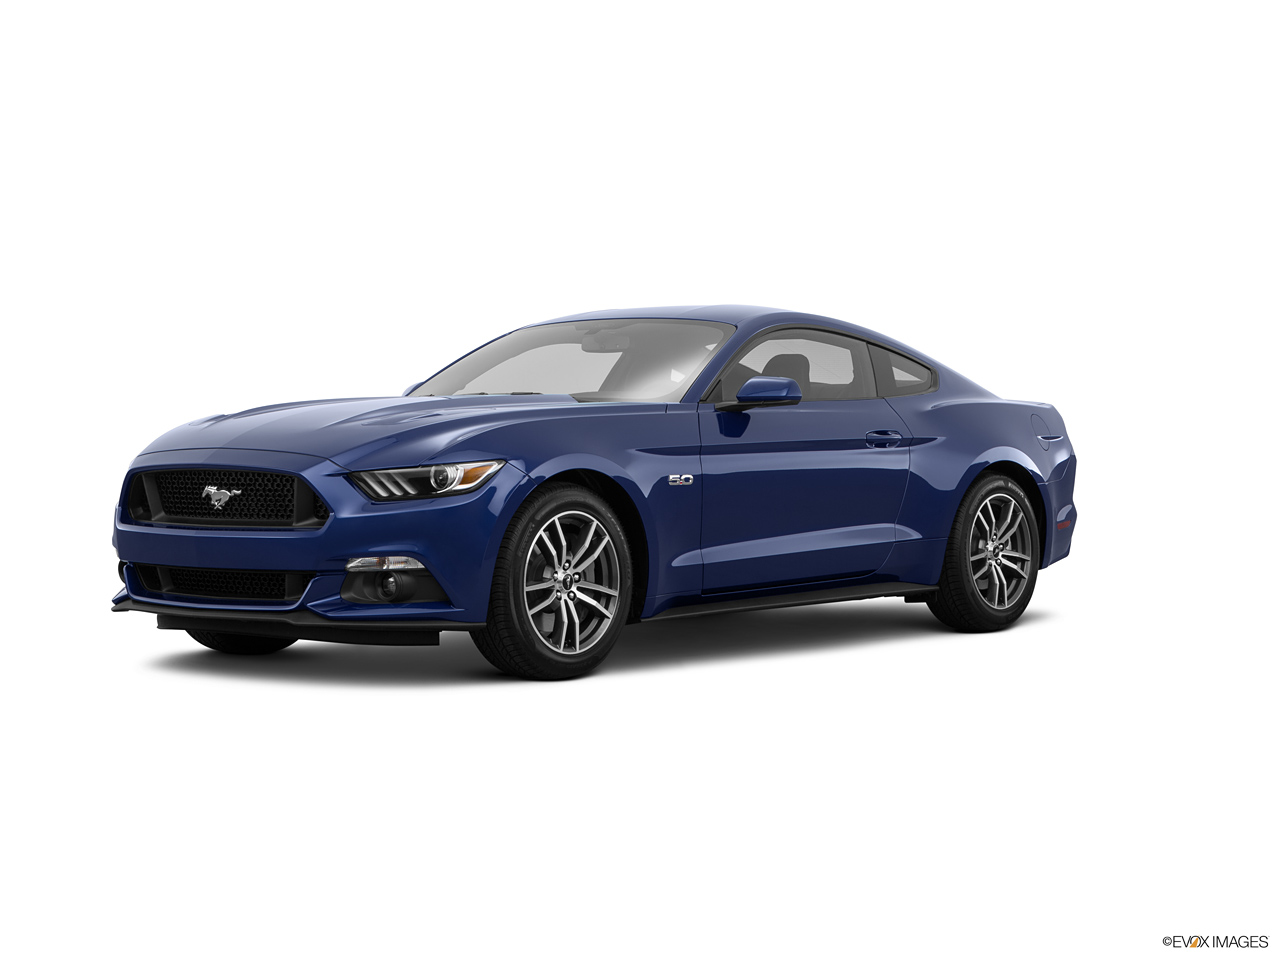 car pictures list for ford mustang 2016 5 0l gt coupe oman yallamotor. Black Bedroom Furniture Sets. Home Design Ideas